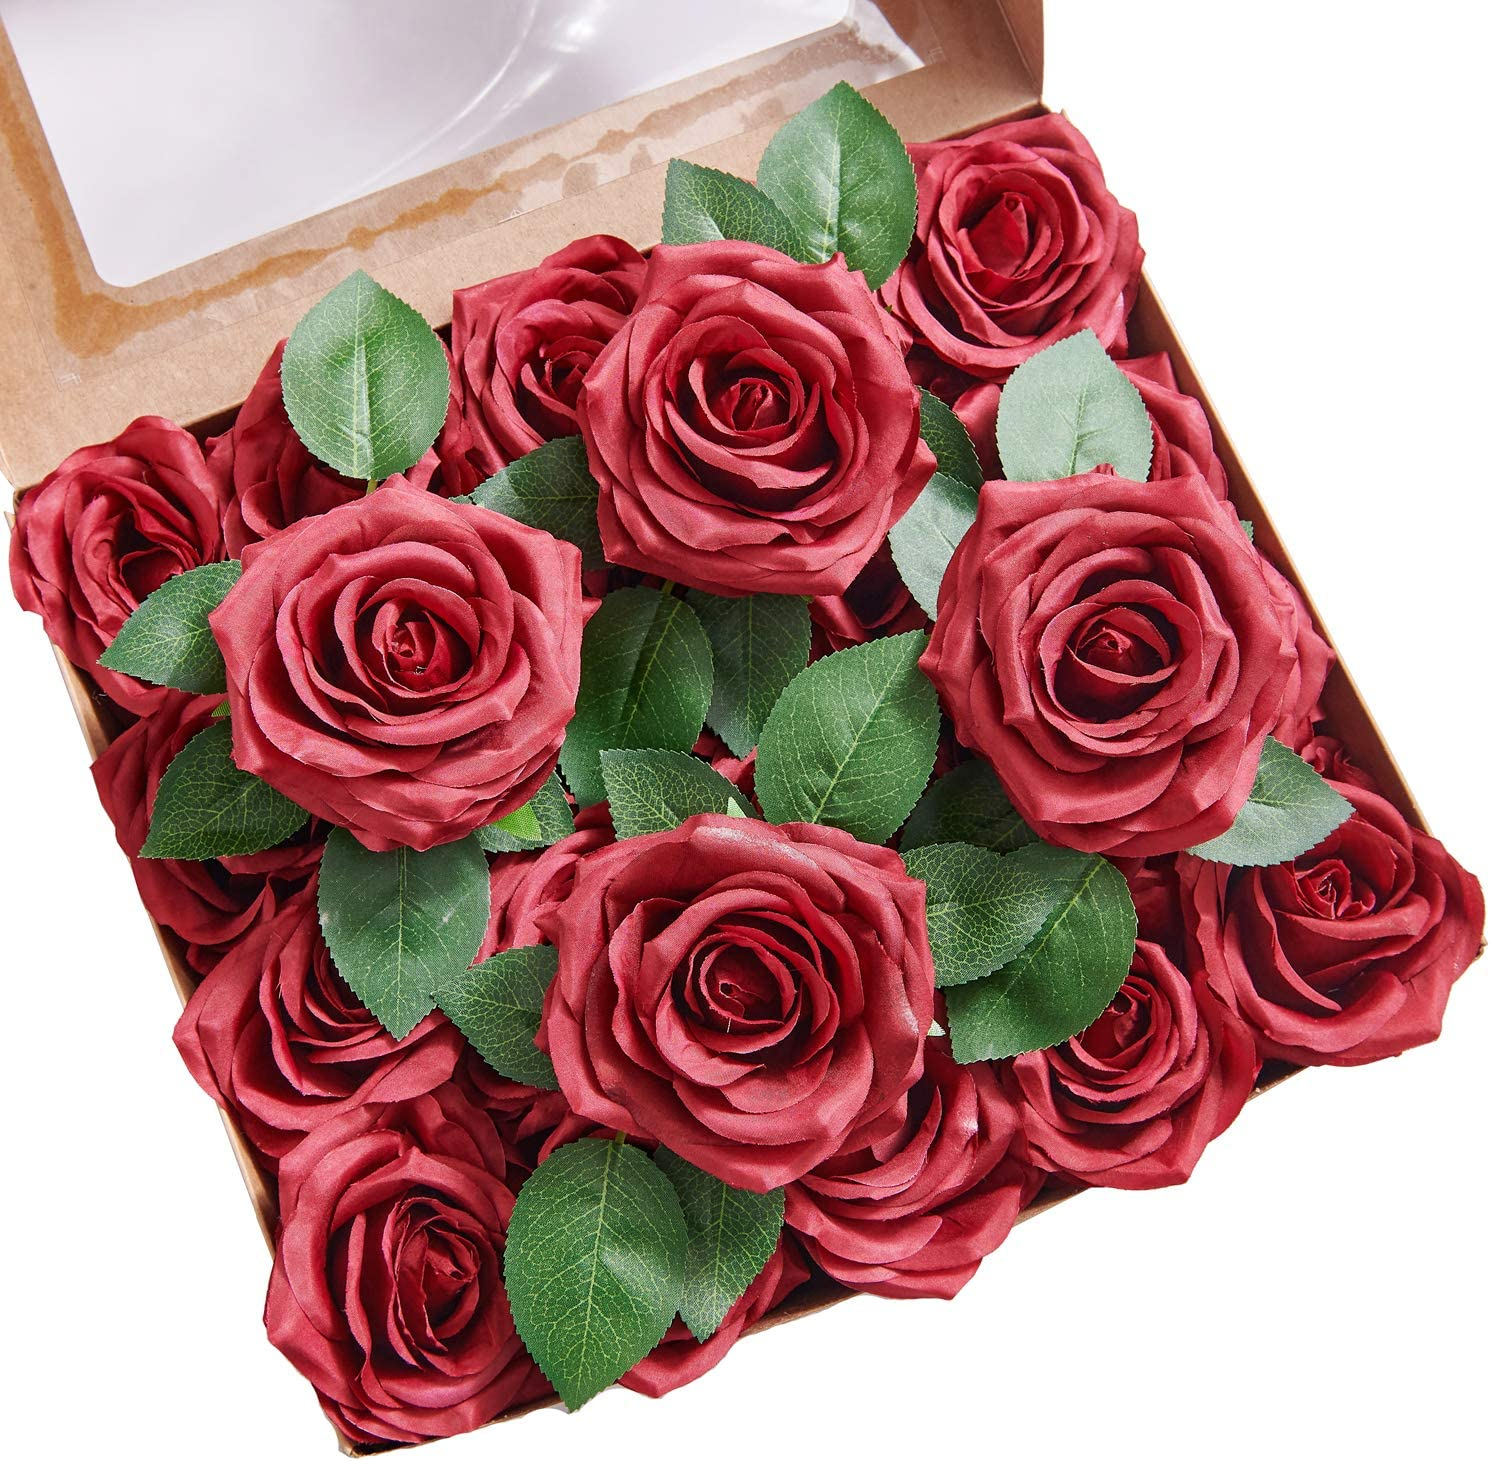 YUZZ Burgundy Silk Roses Tulsa Mall Popular product Artificial Heads with Fake